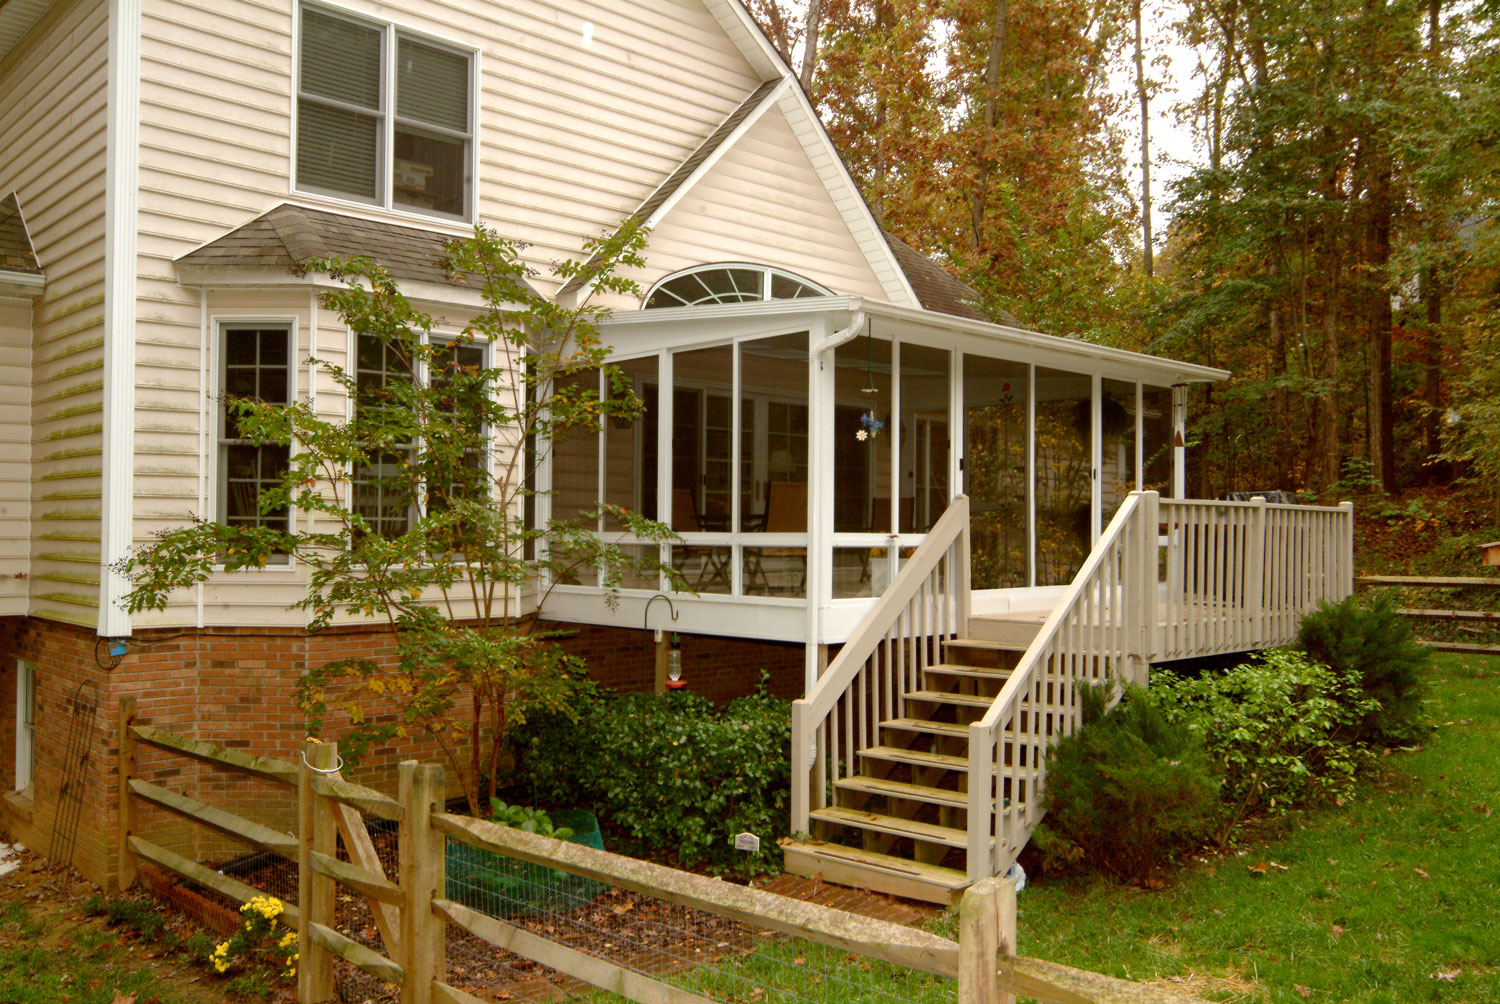 The Pictures of enclosed decks